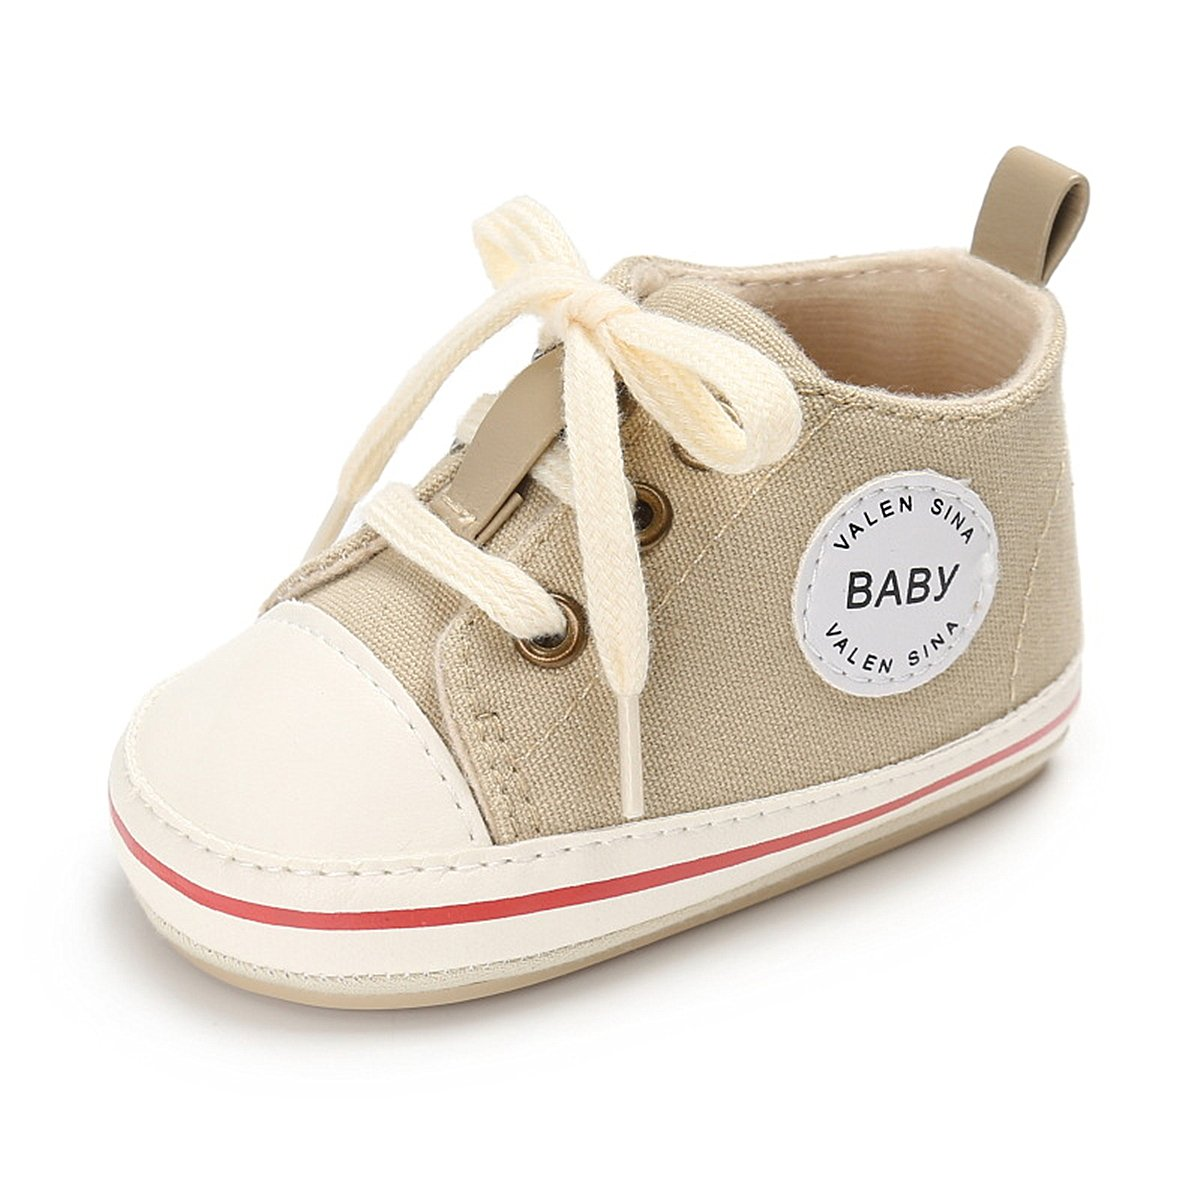 Babycute Infant Boys Girls Soft Sole Anti-Slip Canvas Summer Shoes Soccer Cowboys Classic Casual Sport Sneakers